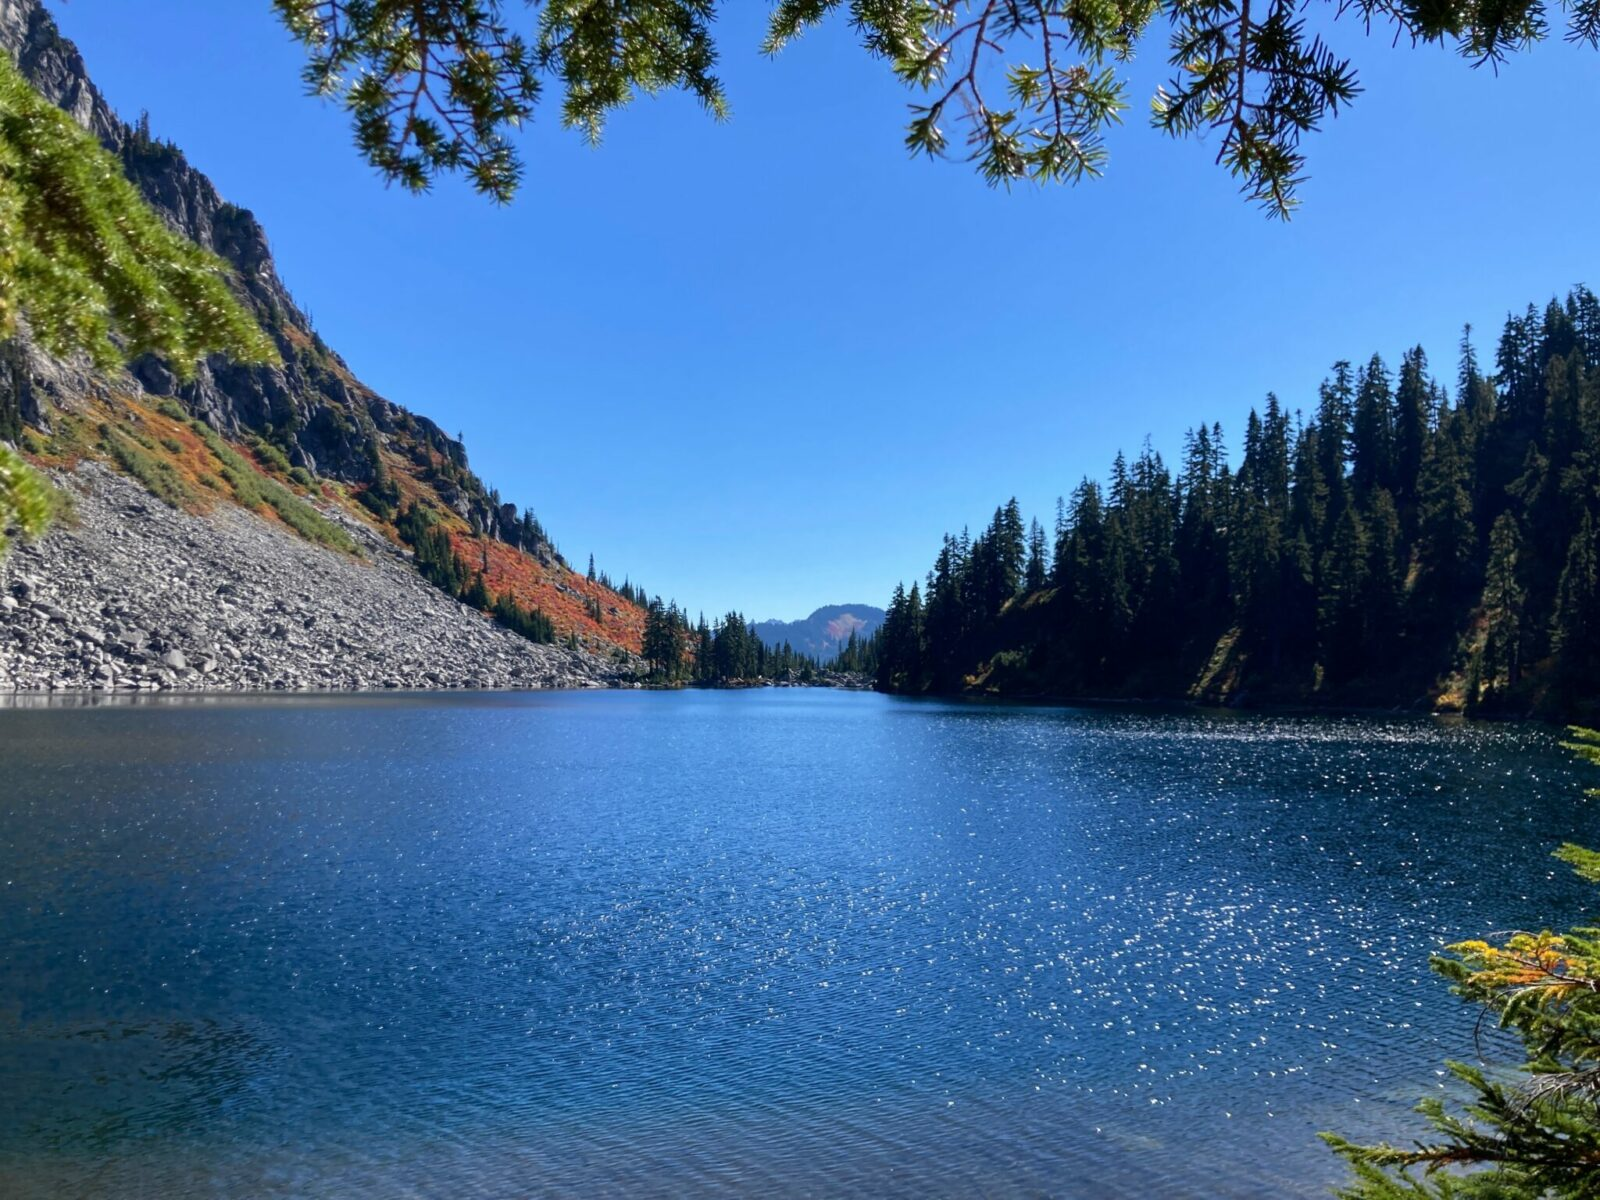 Lake Valhalla on a sunny day, surrounded by evergreen trees and gray rocks.